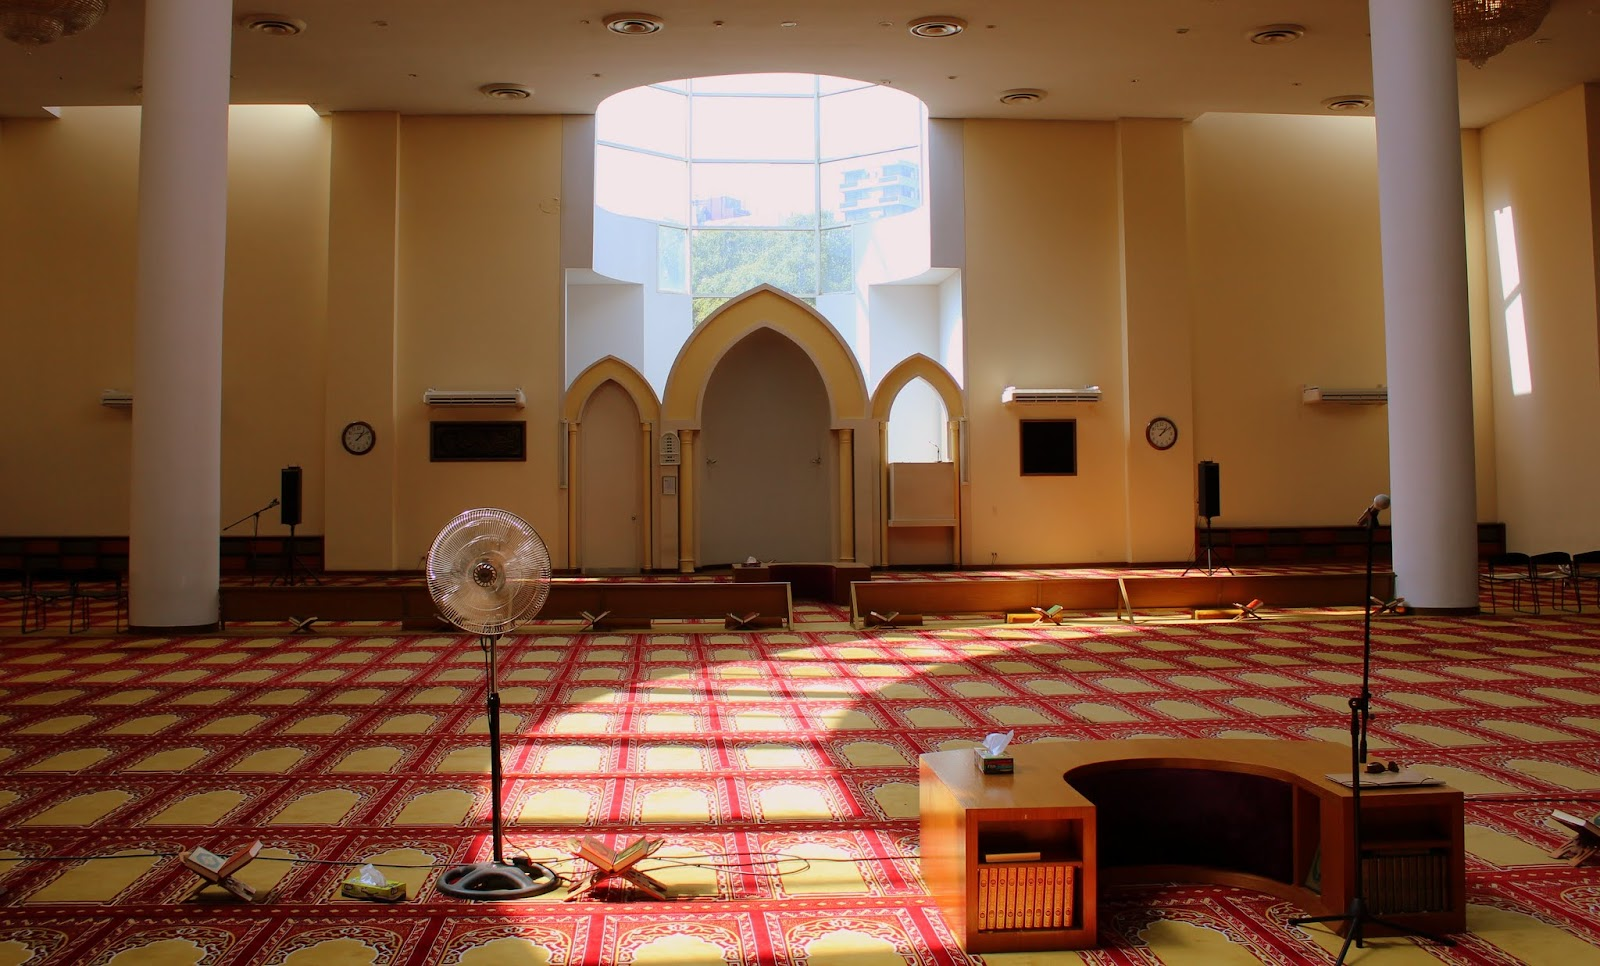 The Murray Chronicles : A visit to a mosque ~ King Fahd